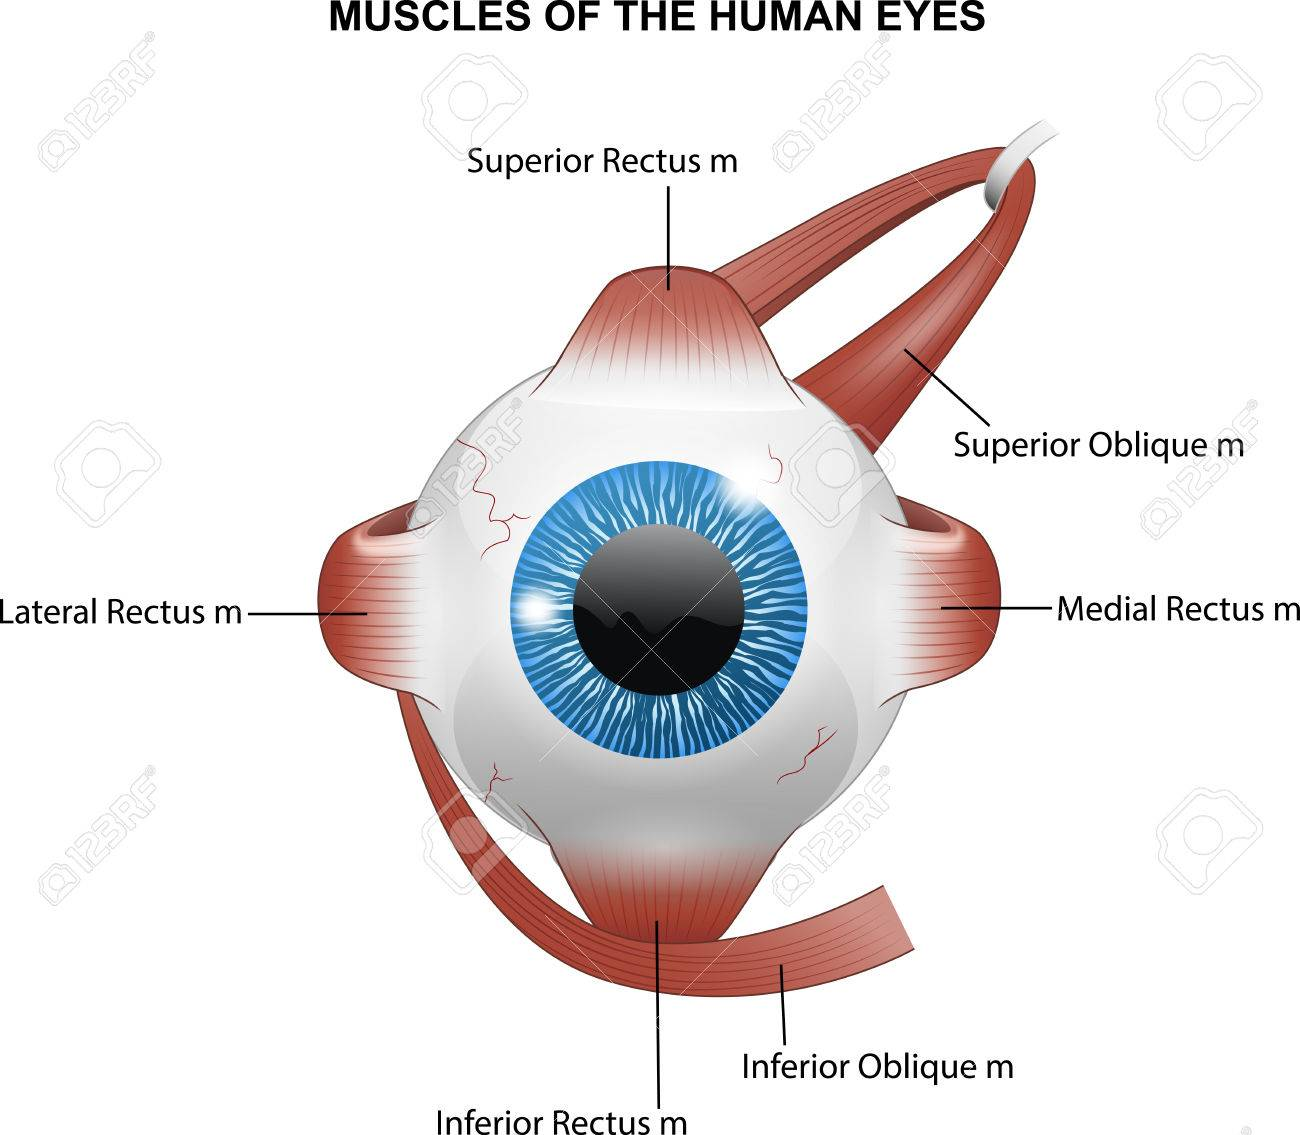 Illustration Of Muscles Of The Human Eyes Royalty Free Cliparts